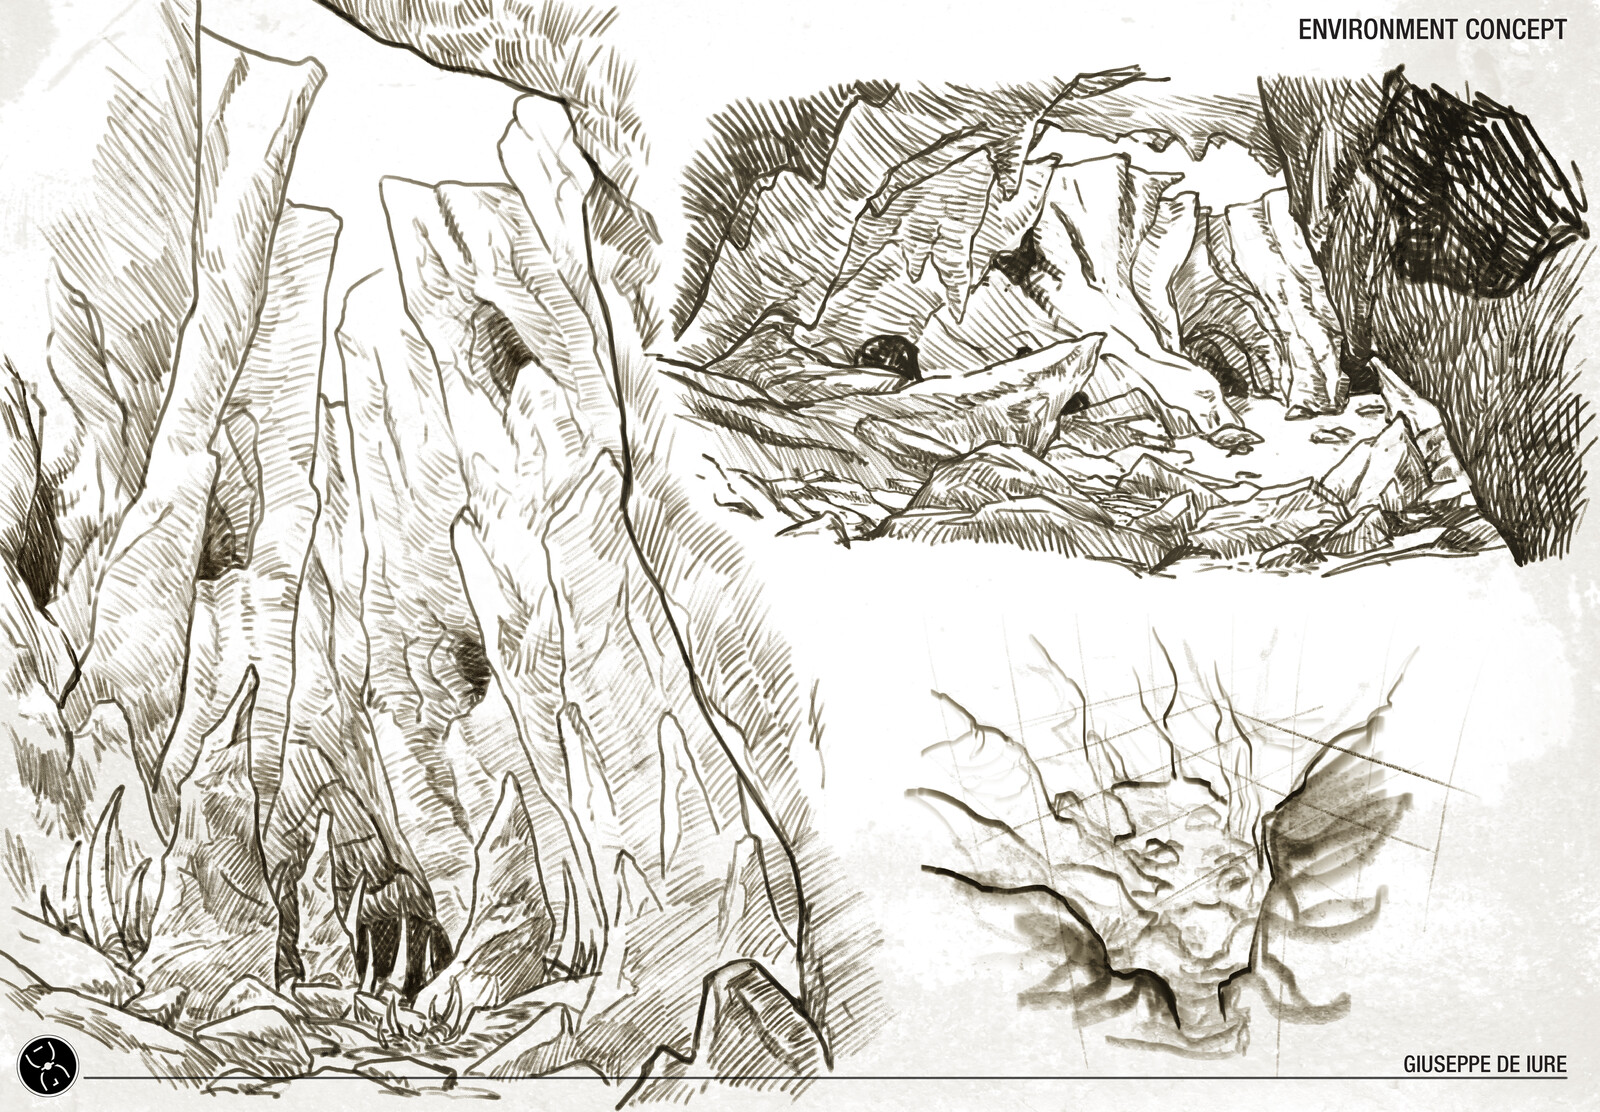 The environment is a natural cave where the creature makes different tunnels to be able to move hidden, climb onto the cave walls and jump on the poor prey fallen and injured.